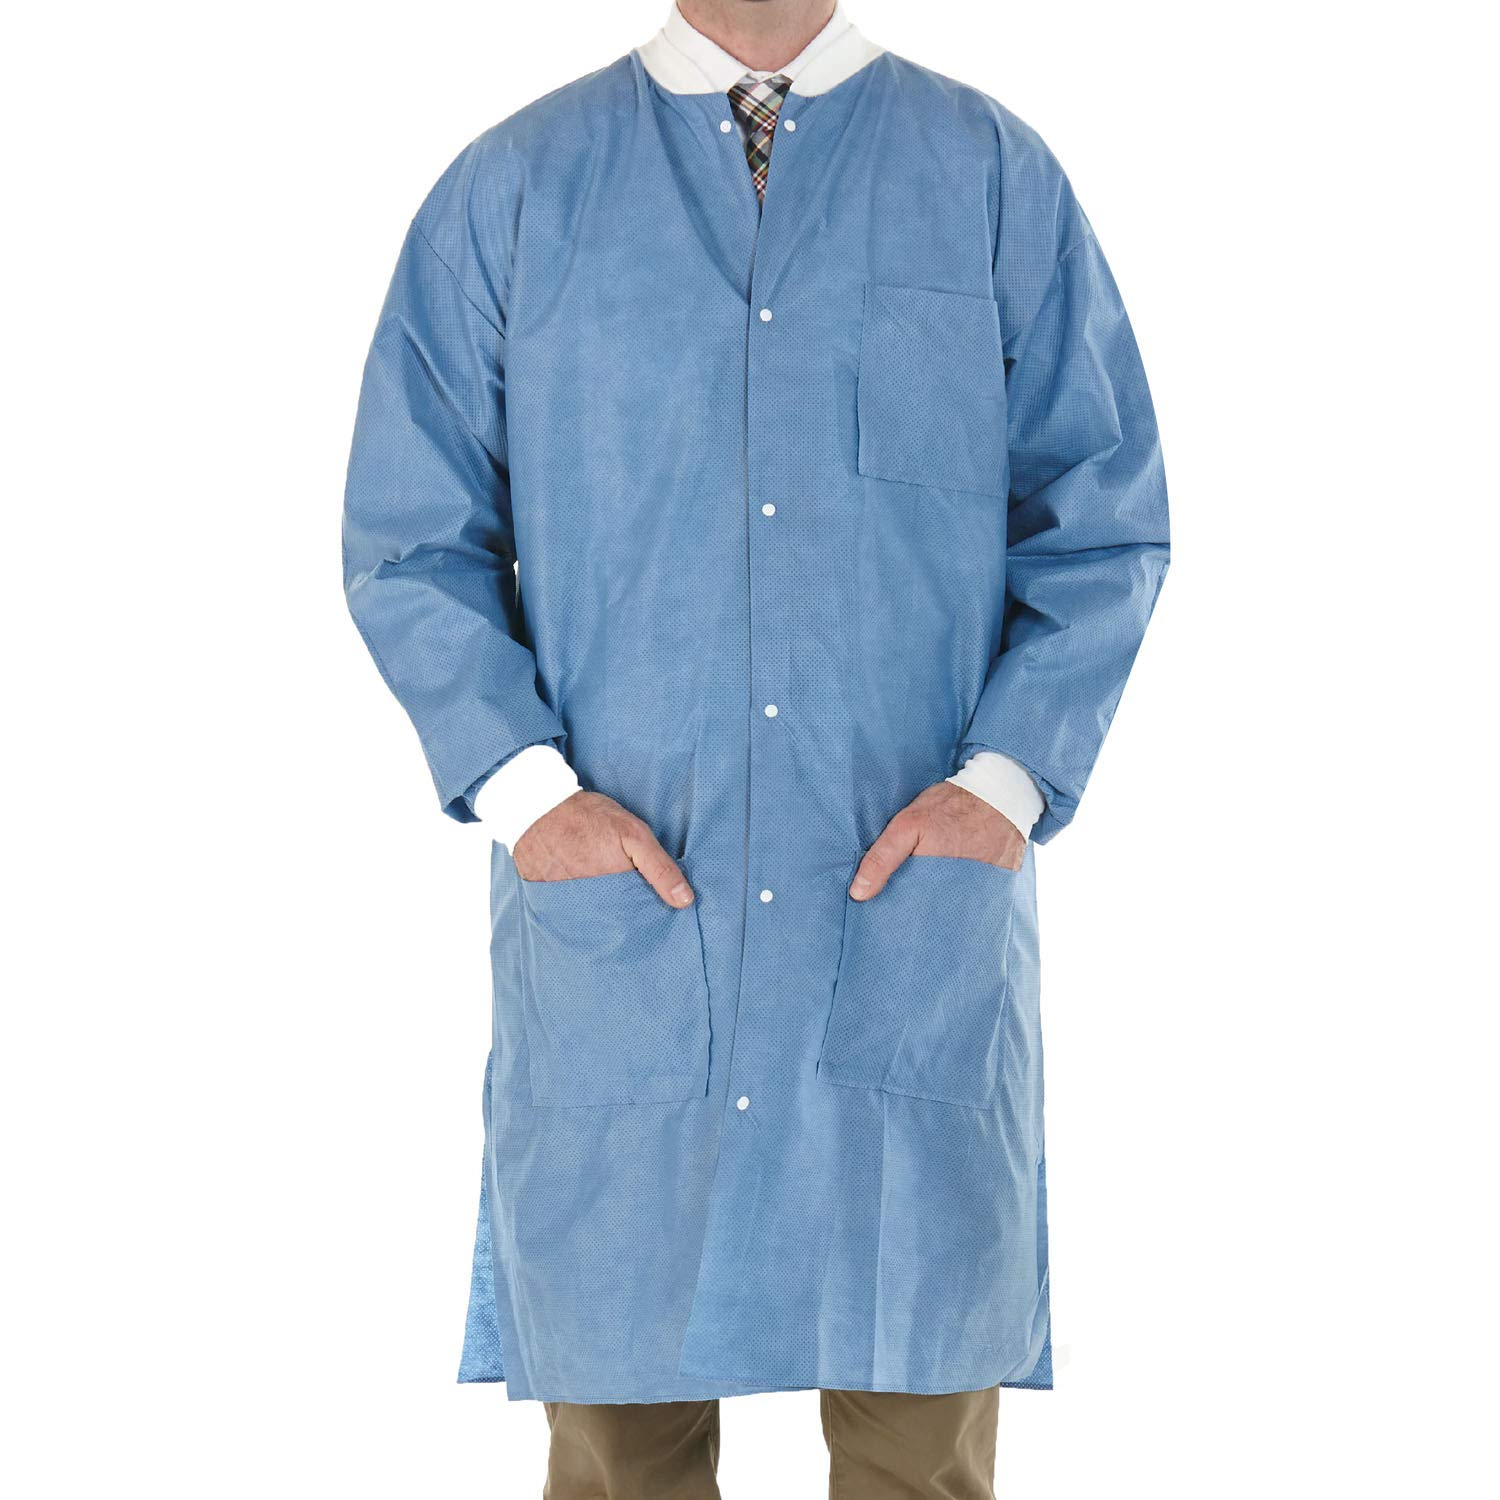 EOM High Performance SMS Disposable Lab Coat With Knit Cuffs and Collar, 3 Pockets Thigh Length Pack of 30, Size Medium